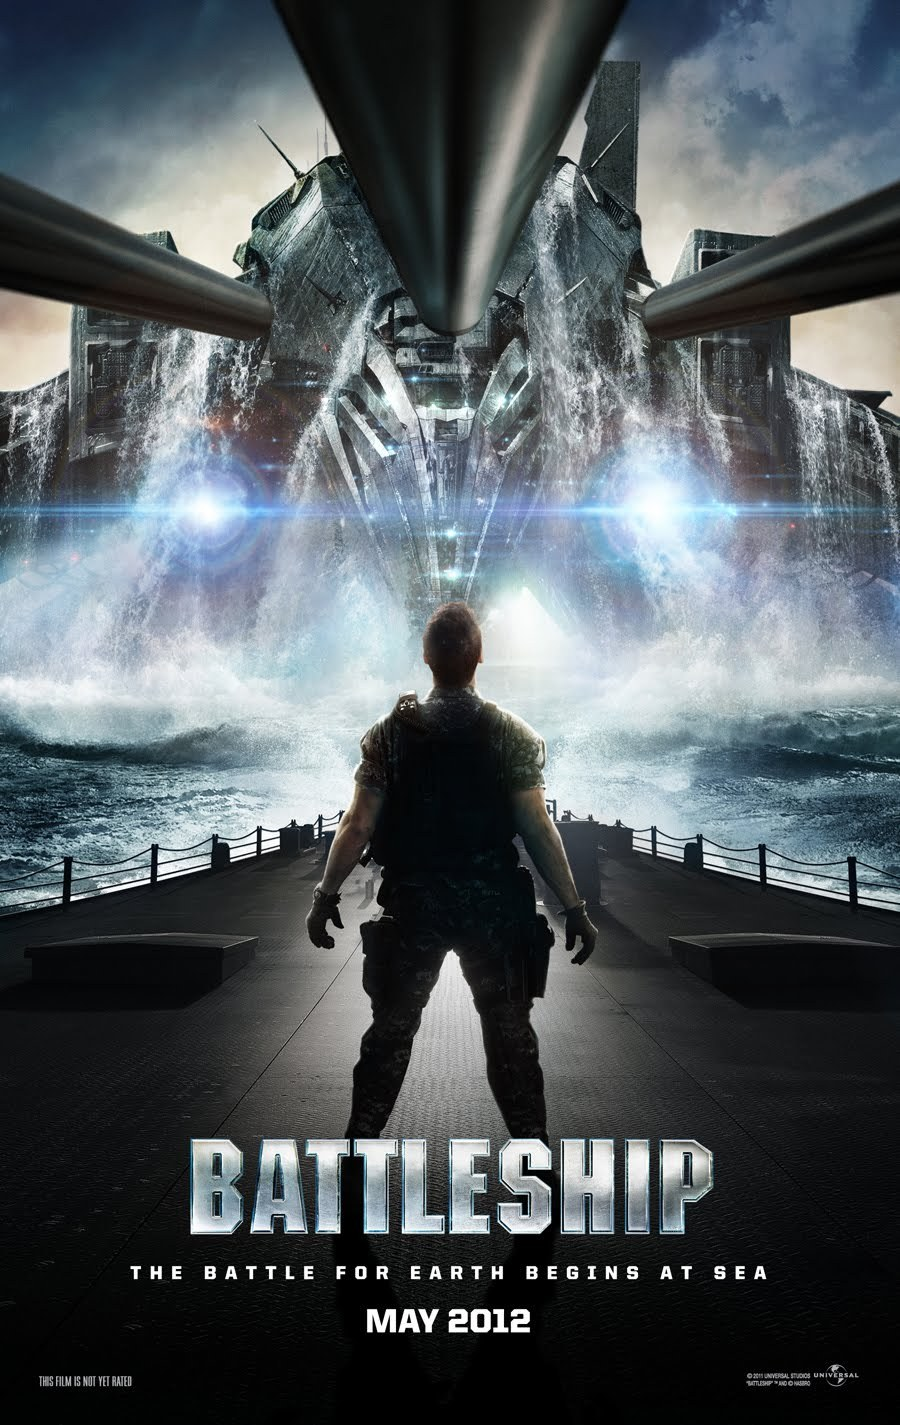 battleship-movie-poster.jpg